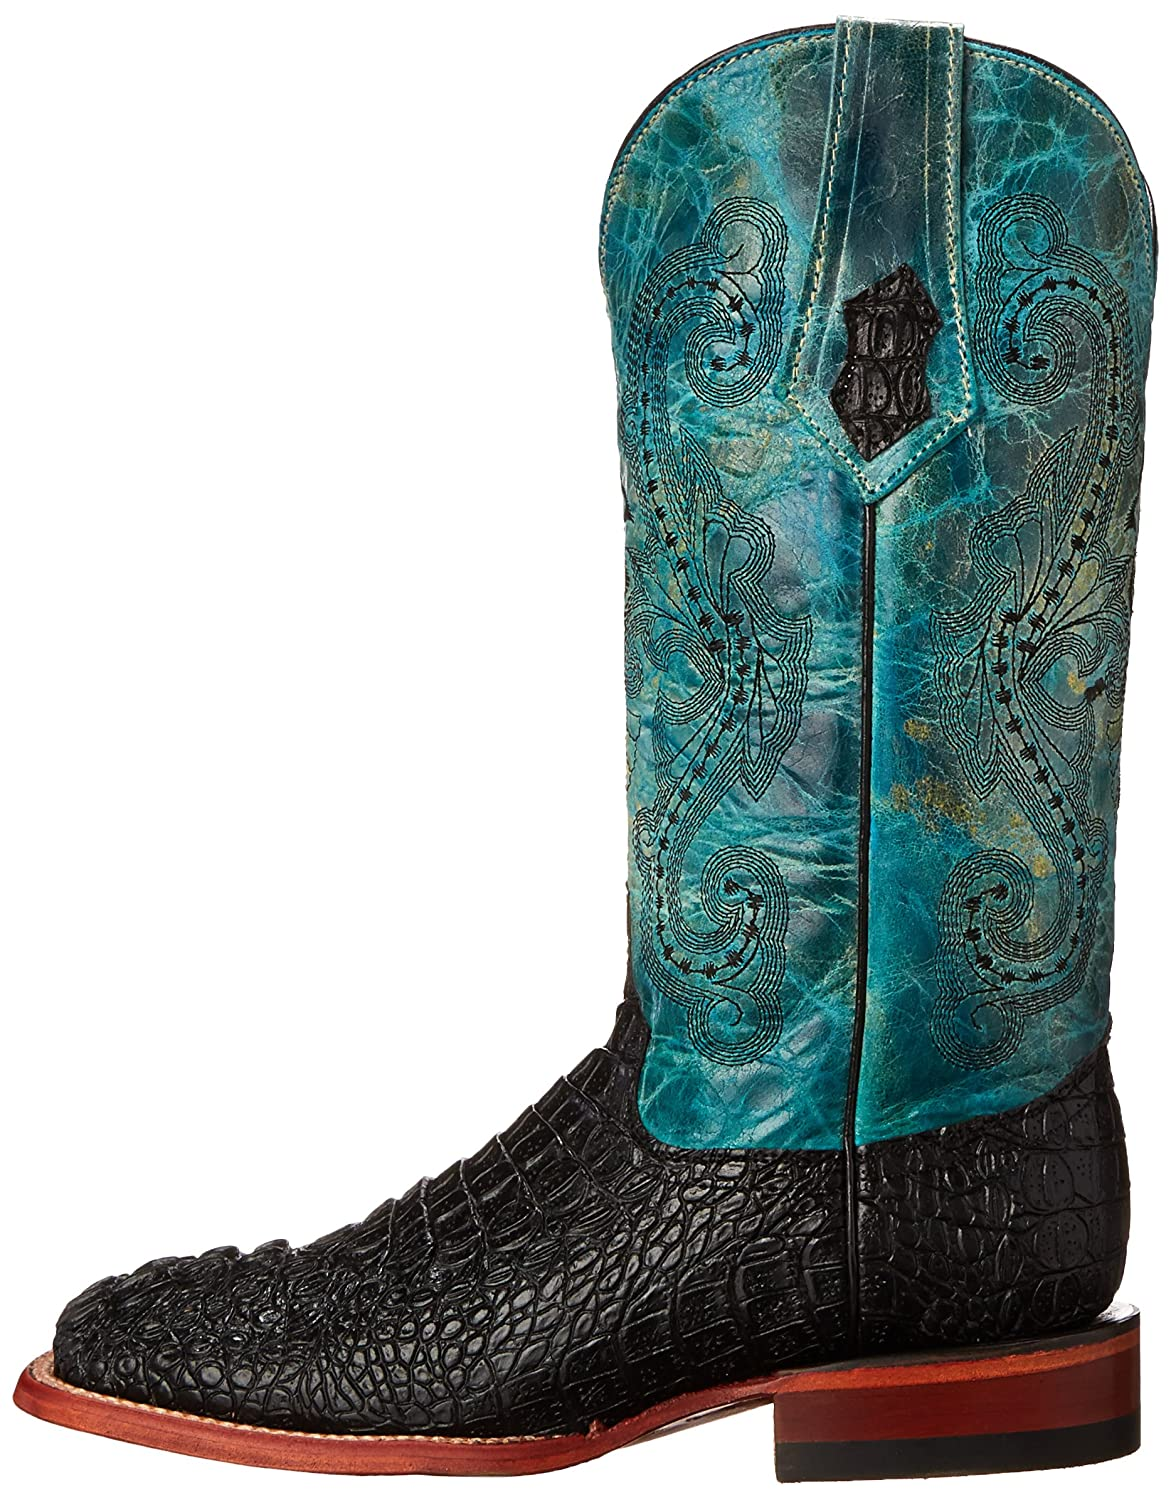 Ferrini Women's Print Caiman BT Western Boot B00SCXUSVS 10 B(M) US|Black